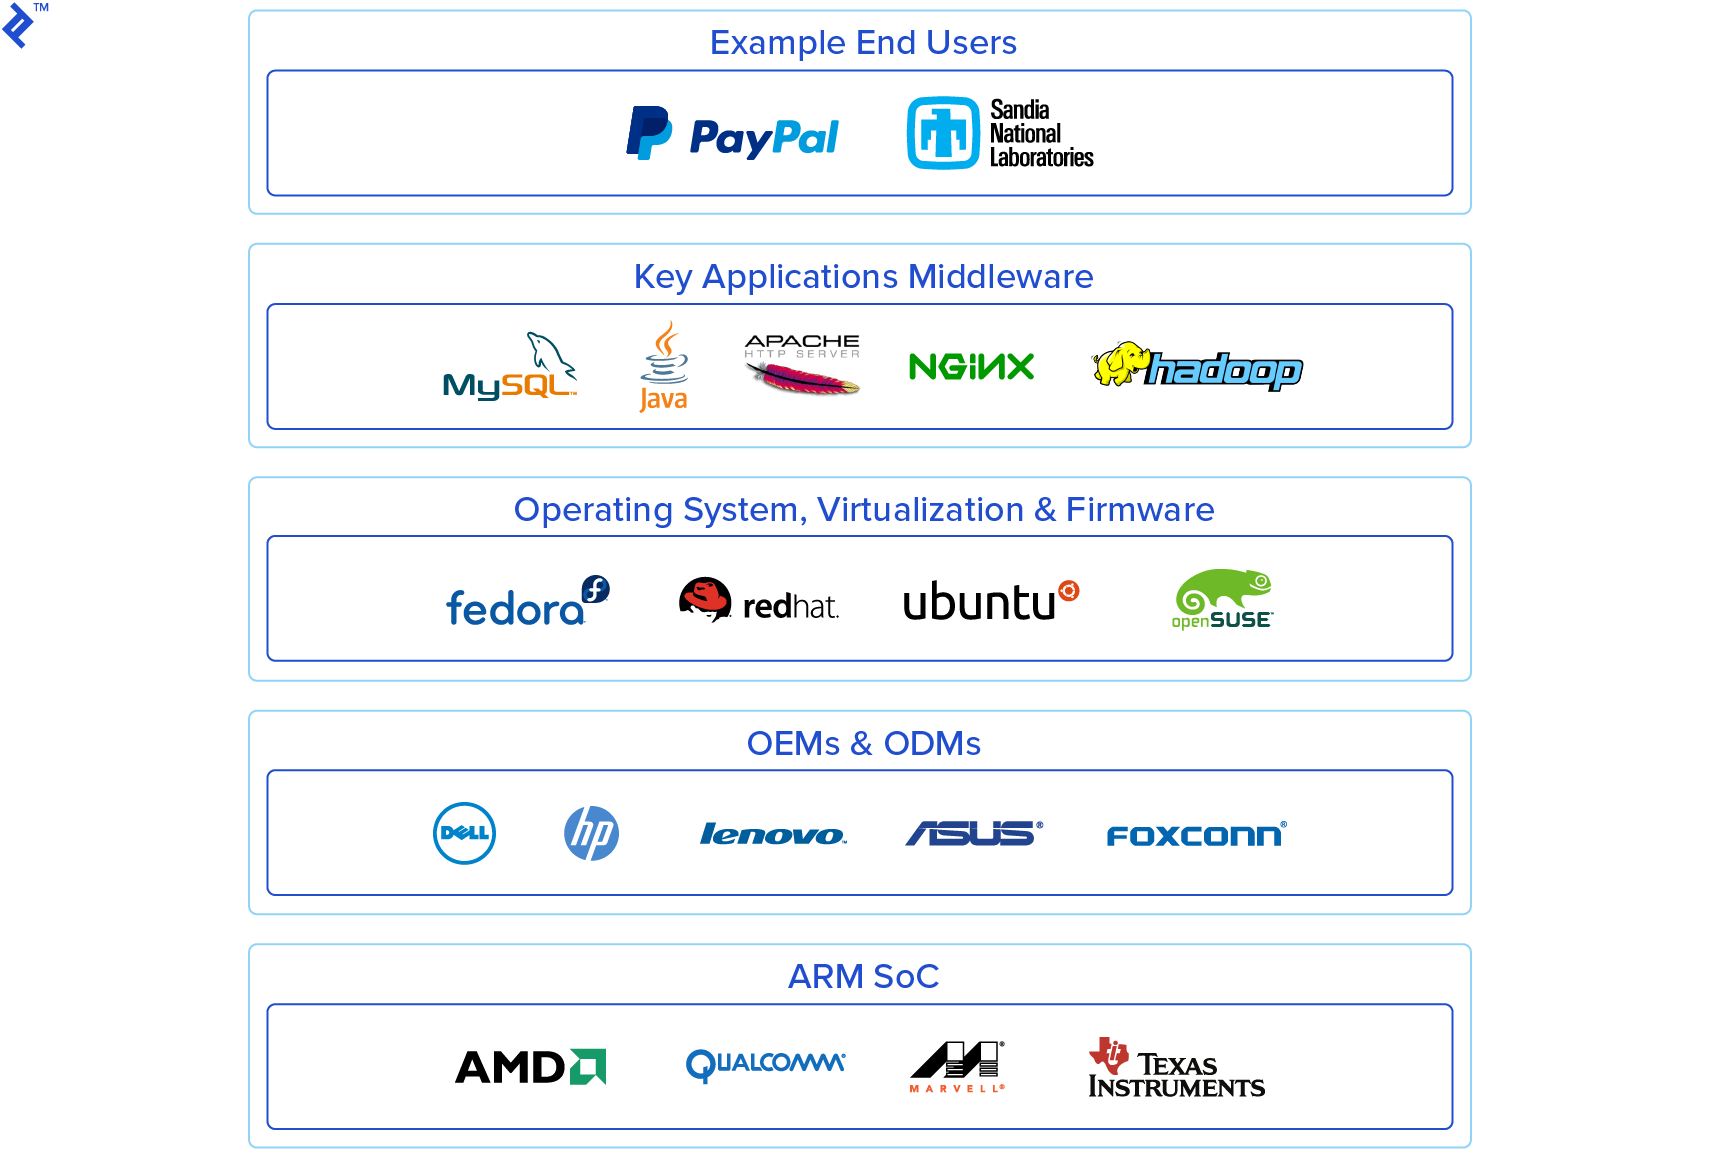 The ARM server ecosystem is small, but a number of big industry names are already on board.